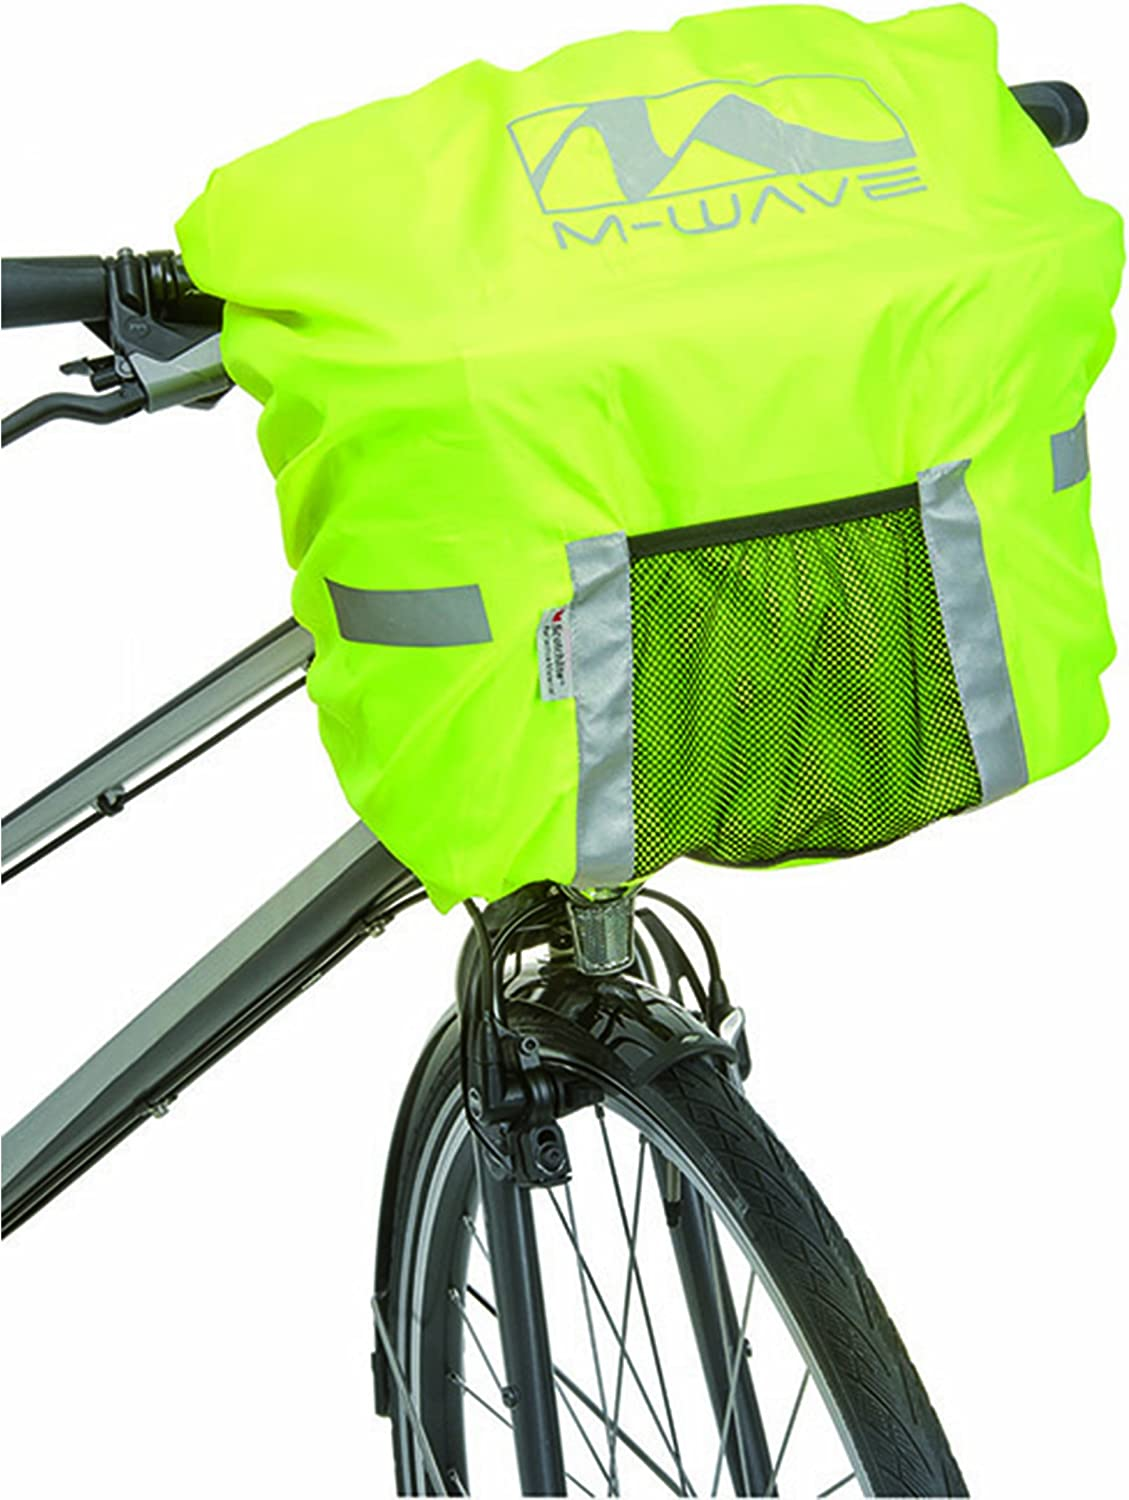 Details about  /Wozinsky Rain Cover Rain Cover Rain Cover for Bicycle Bag Luggage Bag show original title